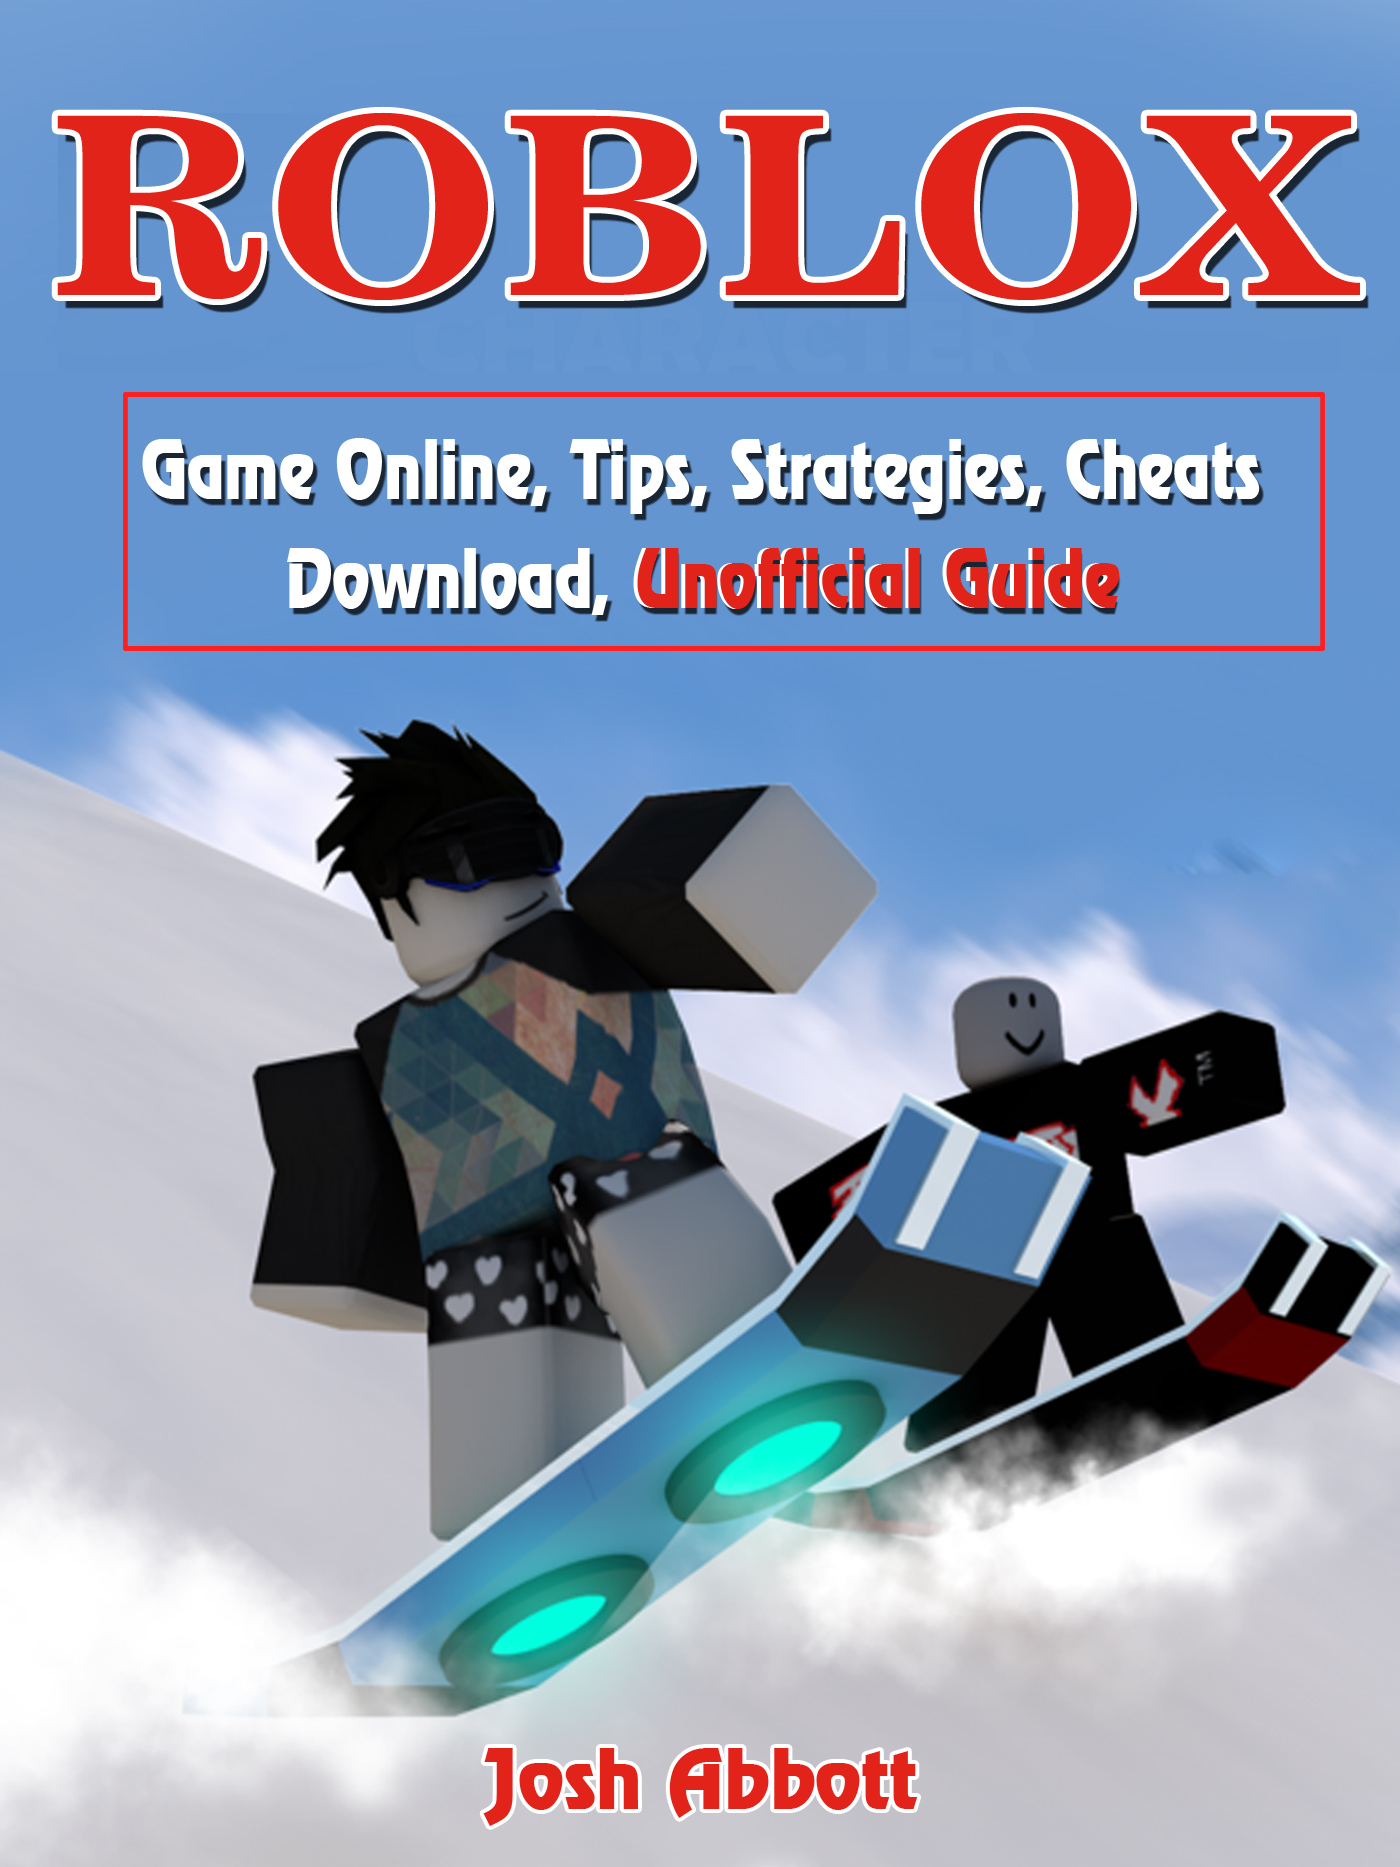 Roblox Game Online Tips Strategies Cheats Download Unofficial Guide